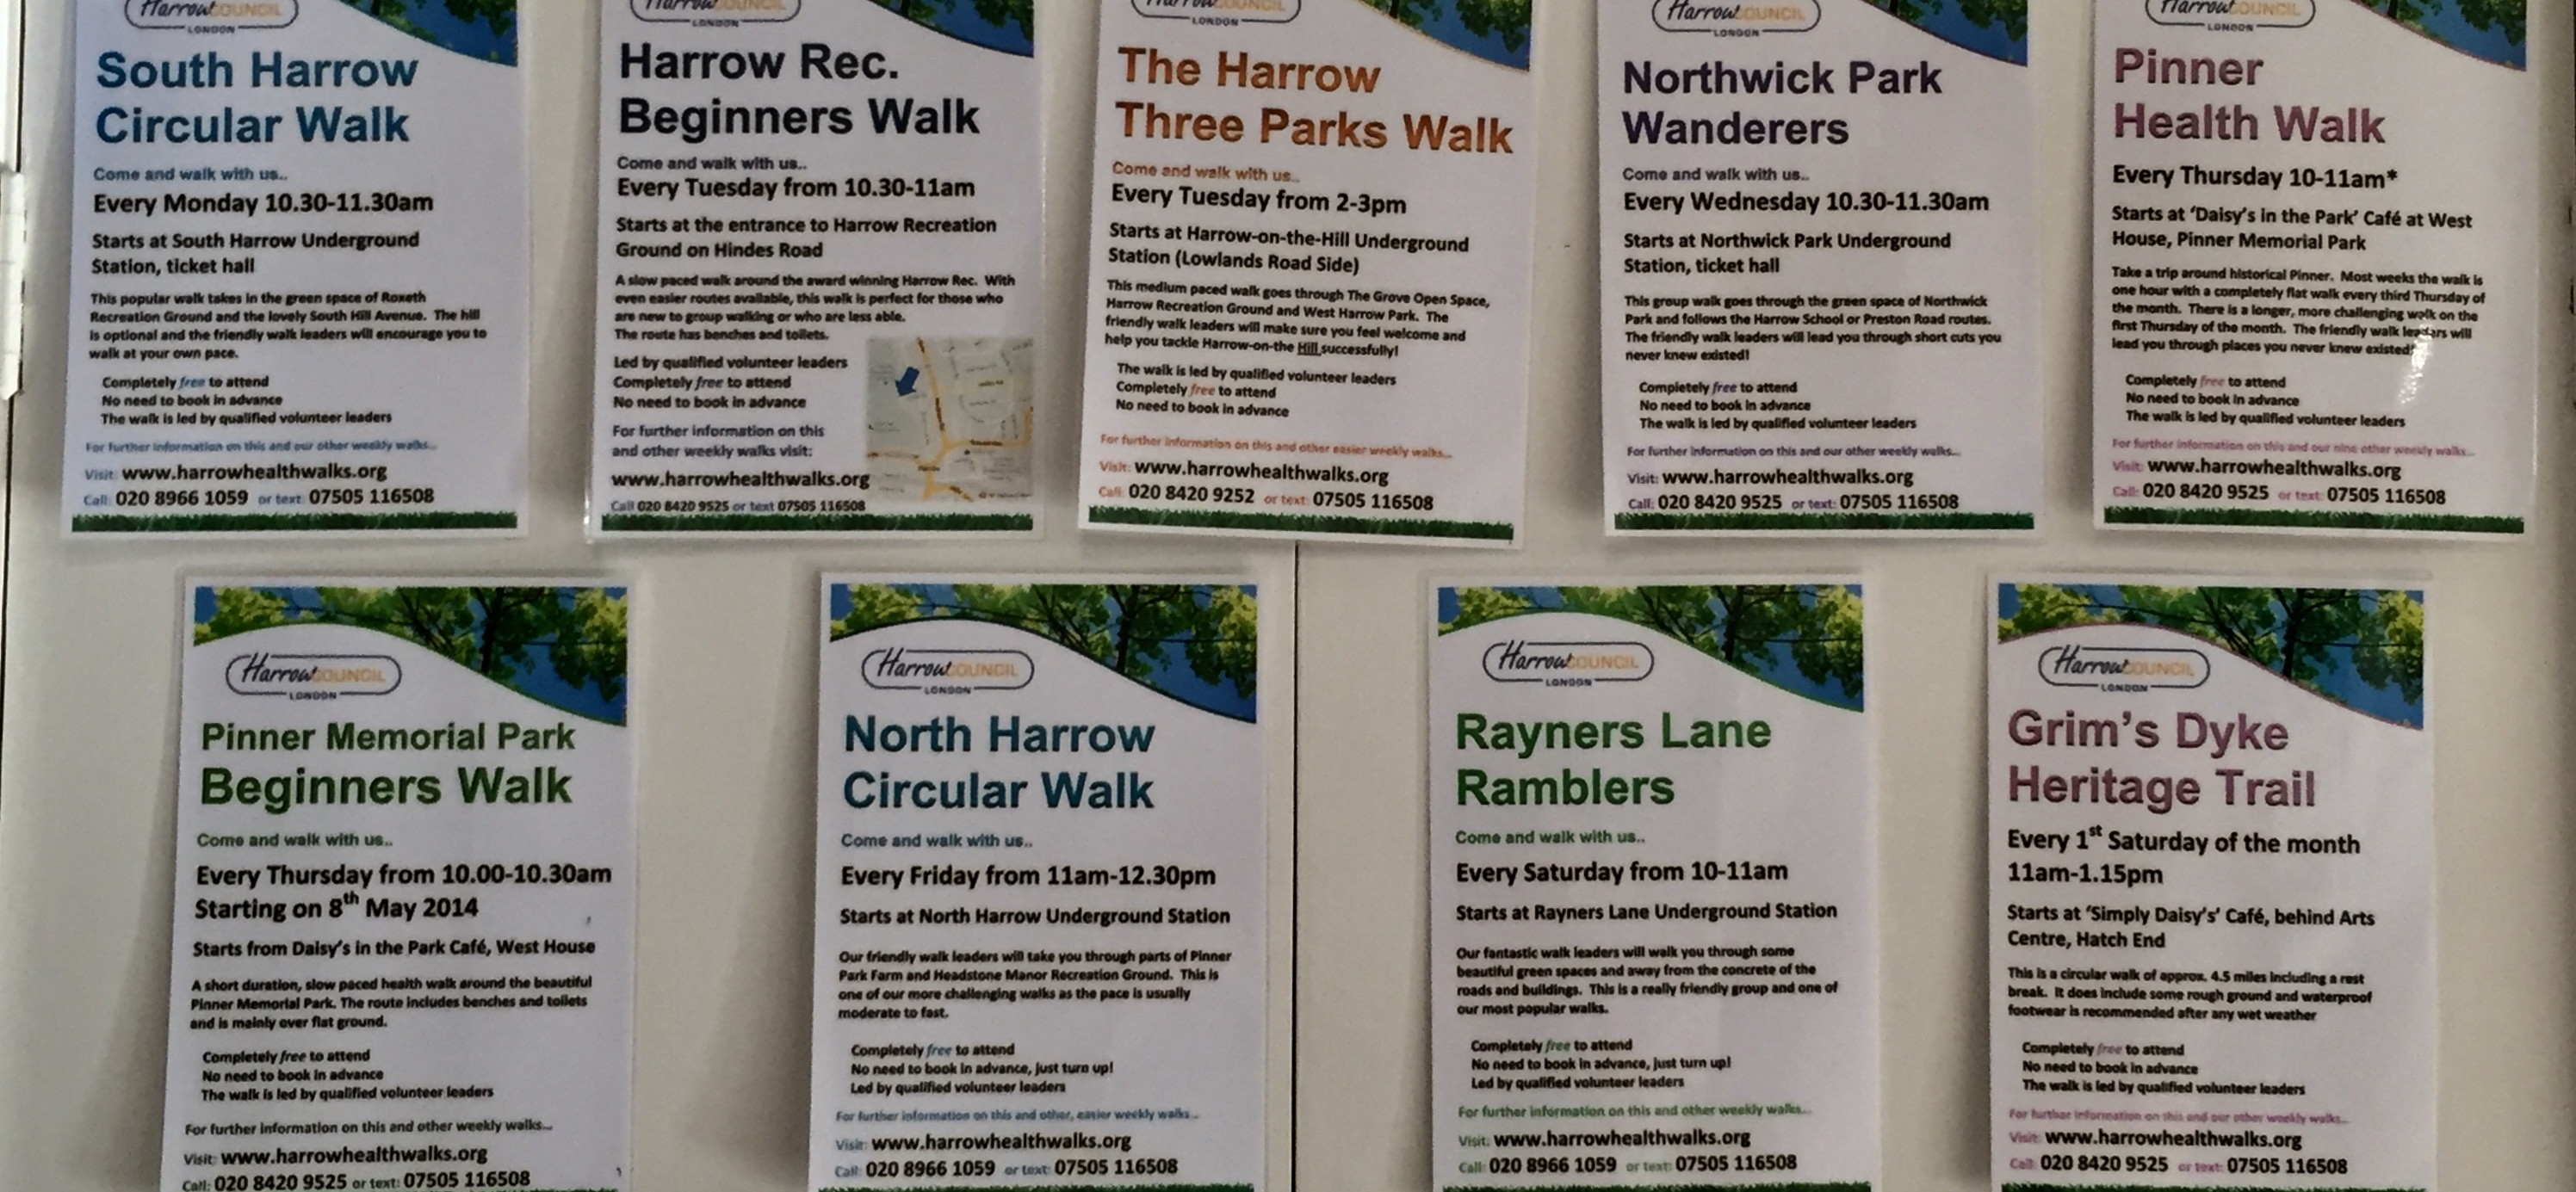 Harrow Health Walks